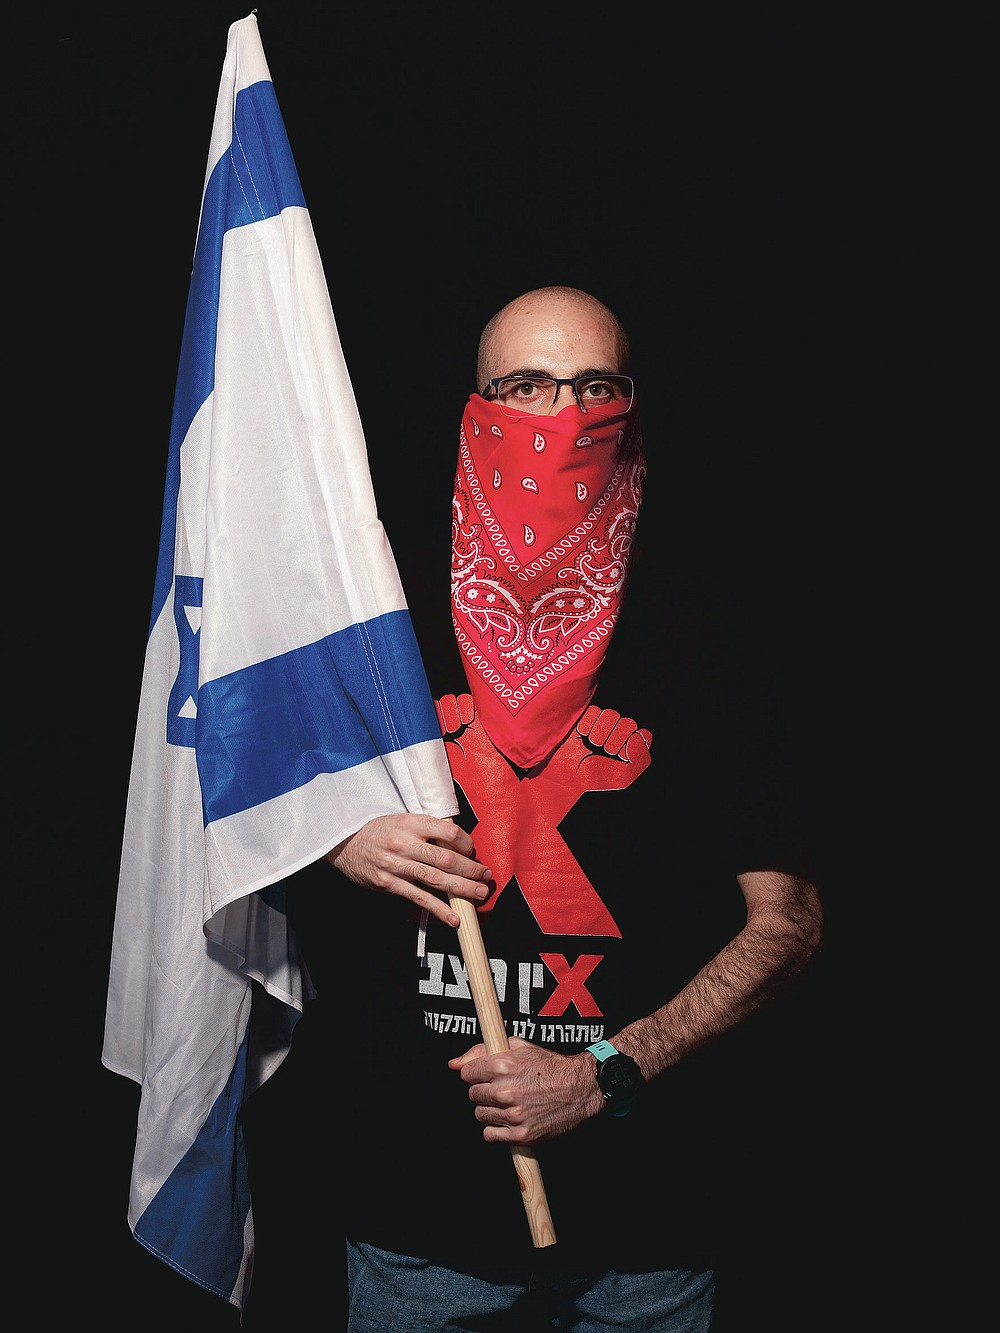 Dekel Gilag, 25, poses for a photo during a protest against Israel's Prime Minister Benjamin Netanyahu, outside his residence in Jerusalem, Thursday, July 23, 2020. The wave of colorful and combative demonstrations against Netanyahu and his perceived failure to handle the country's deepening economic crisis have been characterized by youth. With flags, facemasks, drums, placards and an assortment of props, thousands have been taking to the streets to demand change in a variety of unique ways. (AP Photo/Oded Balilty)